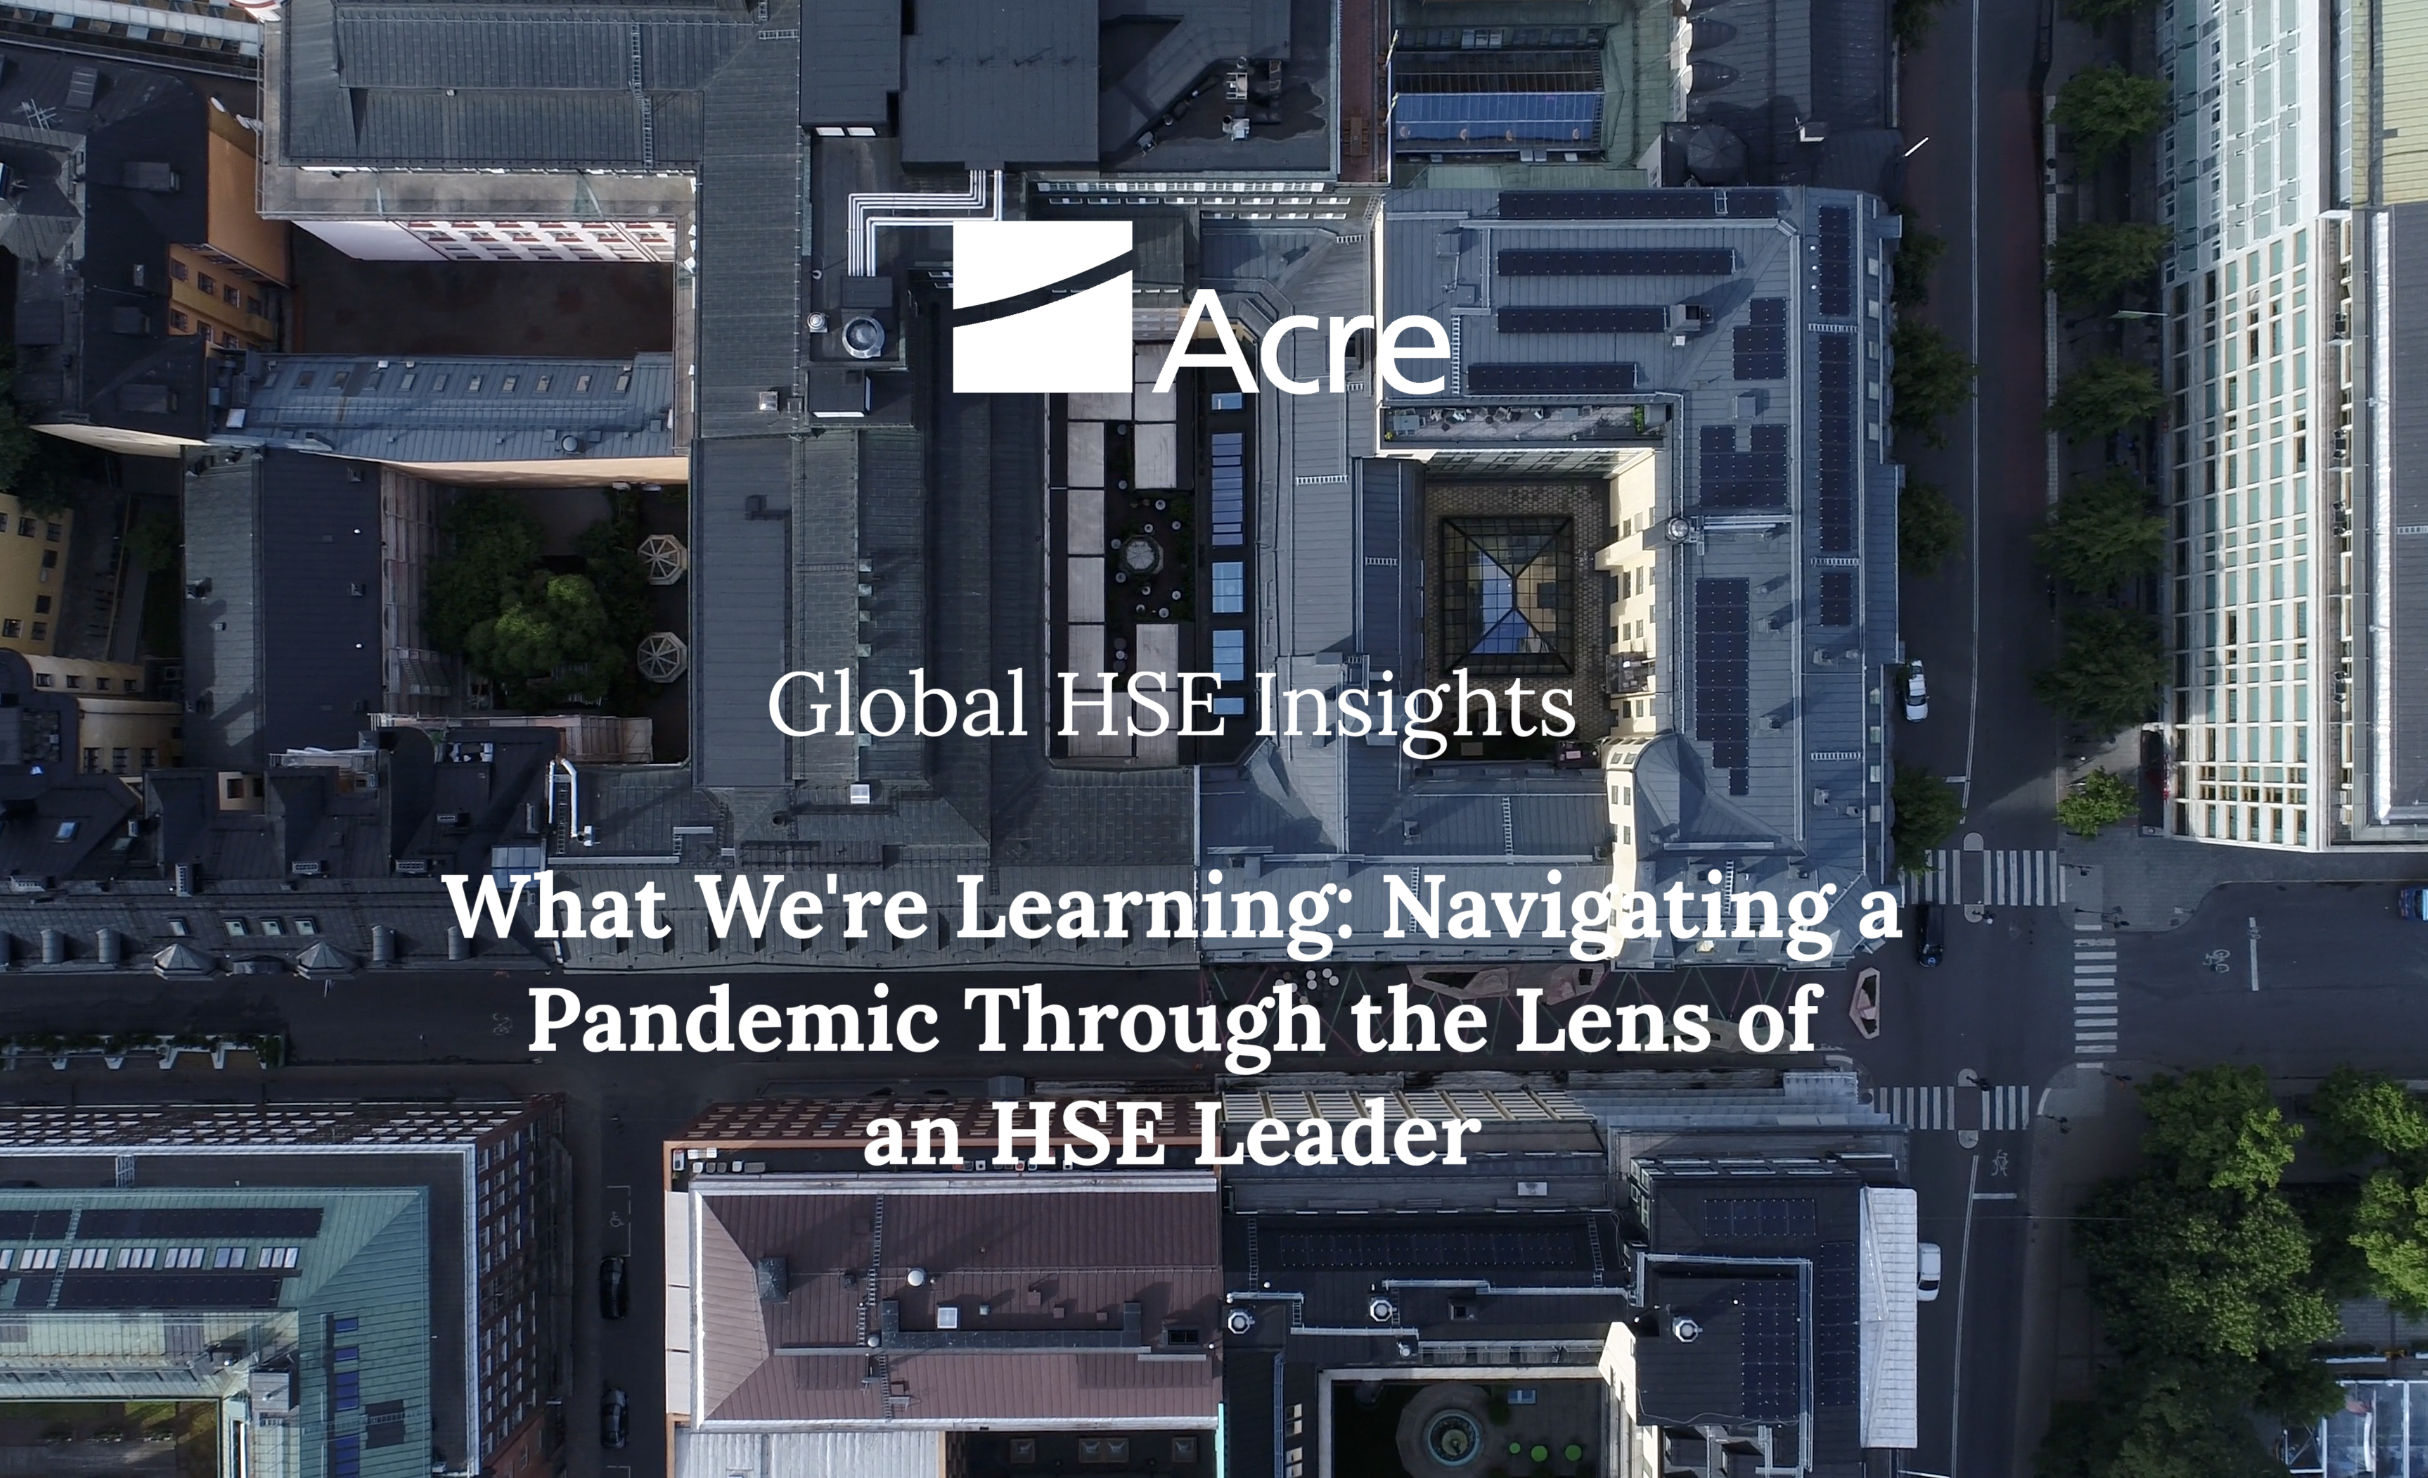 What We're Learning: Navigating a Pandemic Through the Lens of an HSE Leader